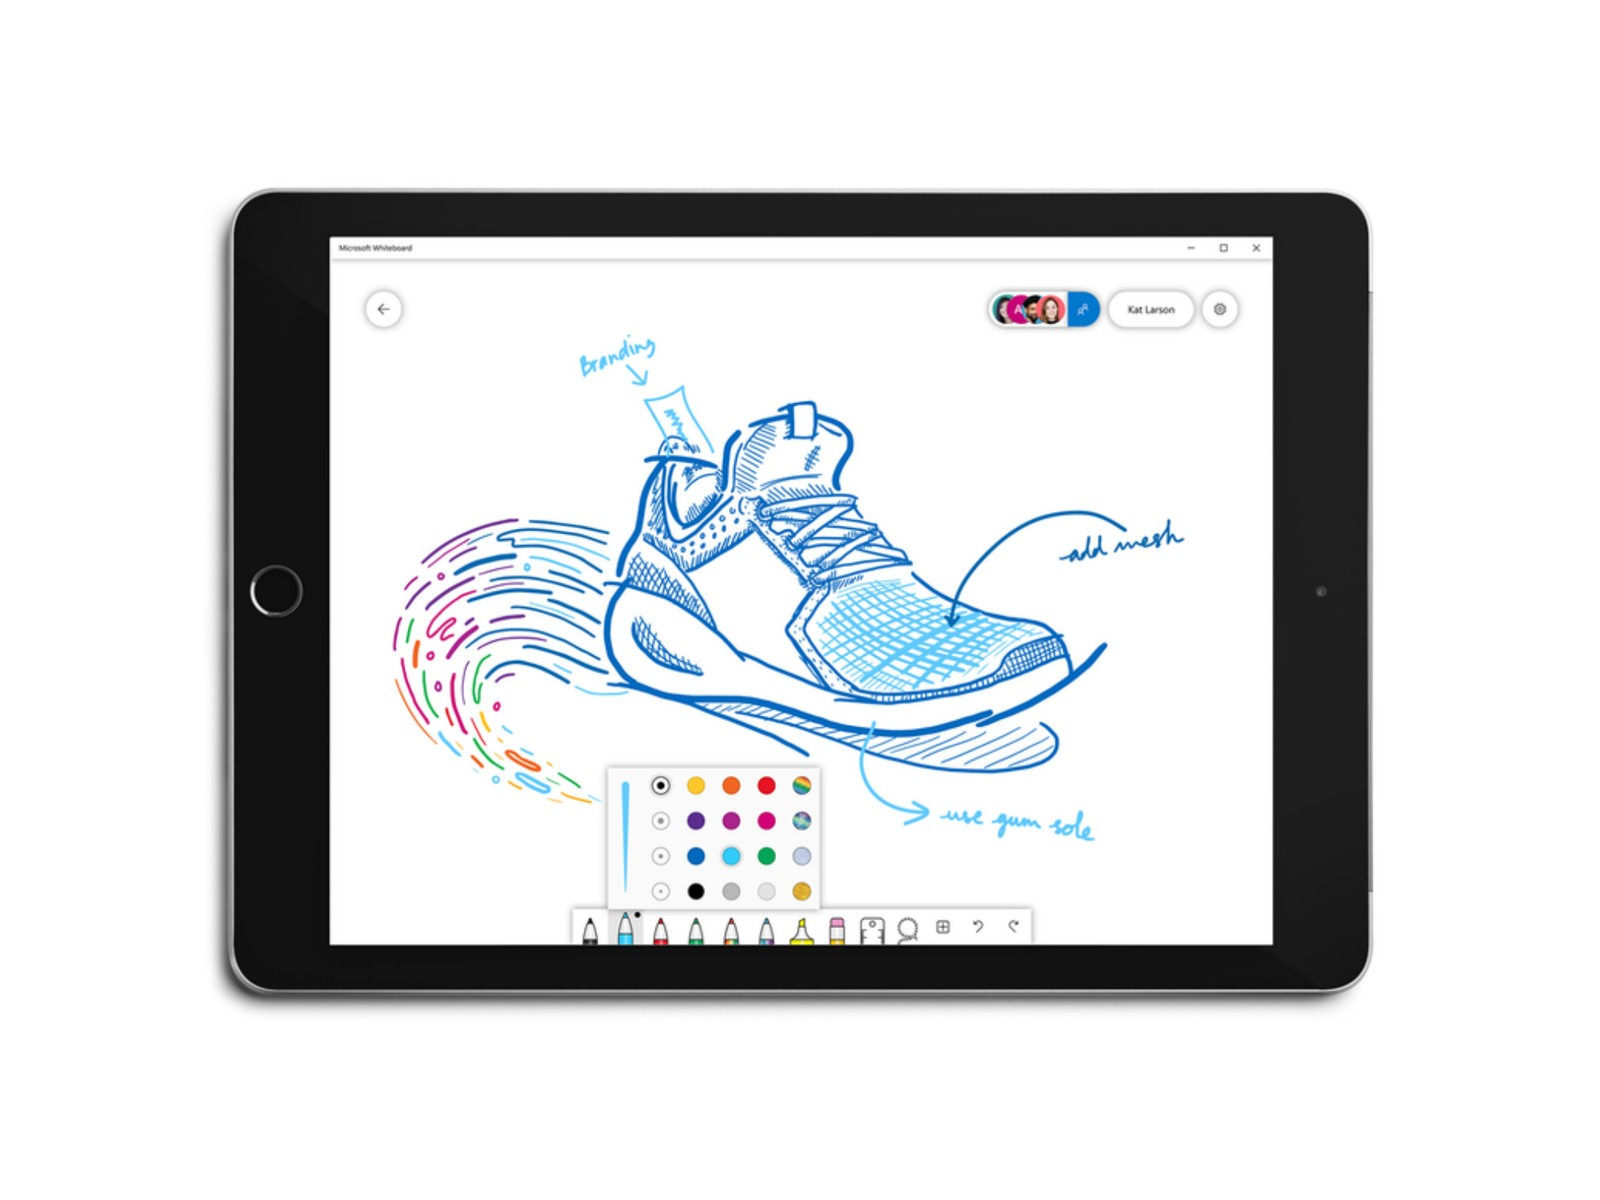 Microsoft Whiteboard adds new pen and background colors, grid lines, and more